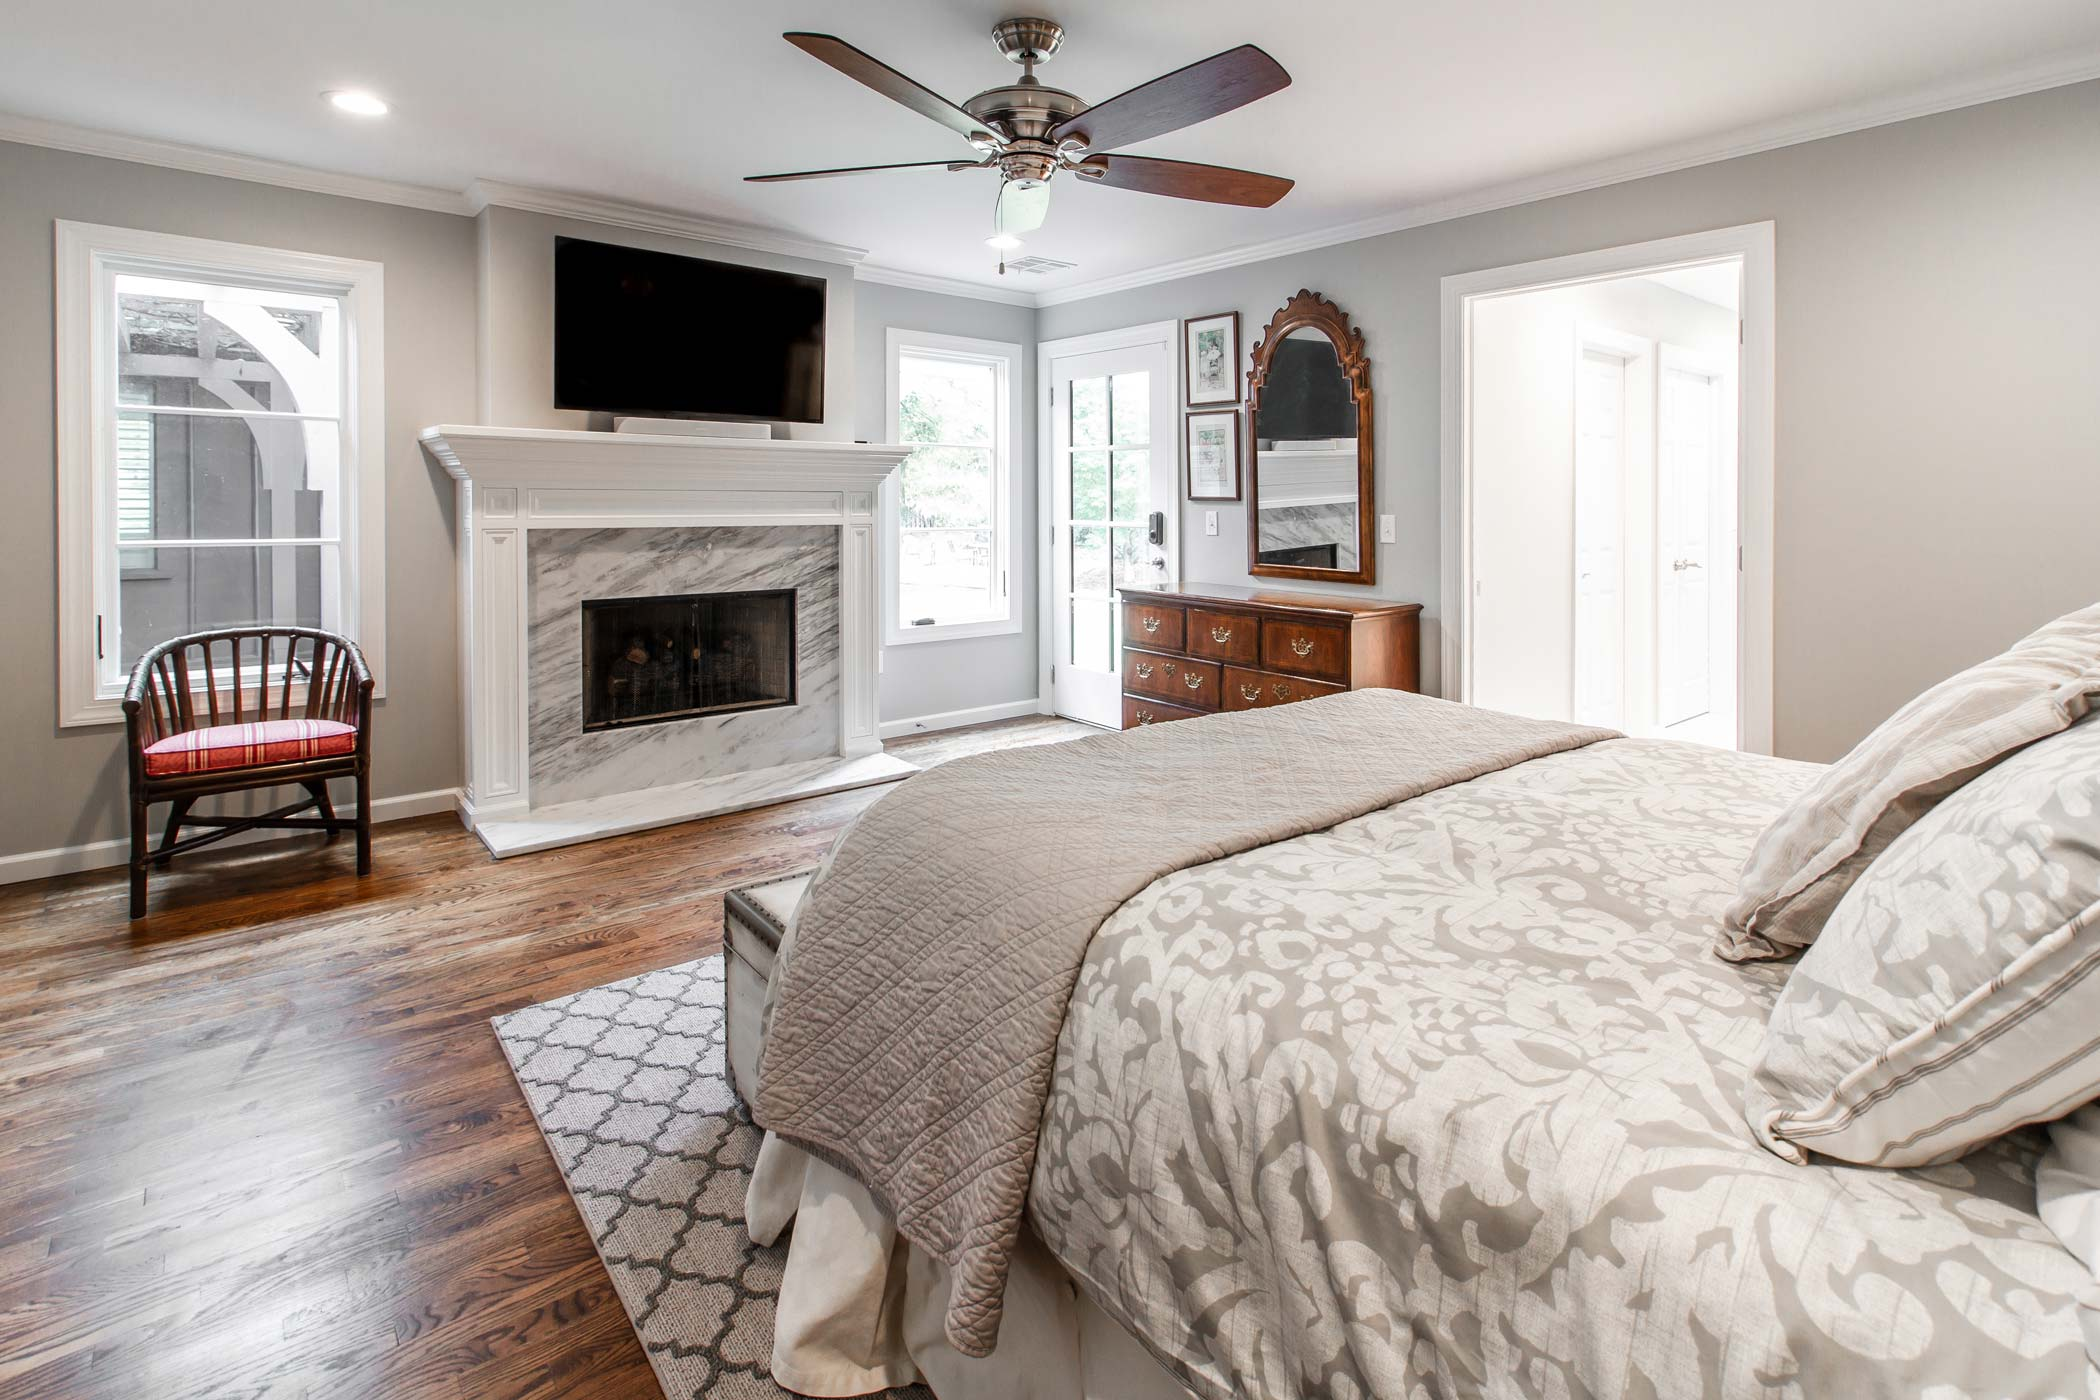 Master Bedroom Remodel - Tulsa Contractor | Home Innovations